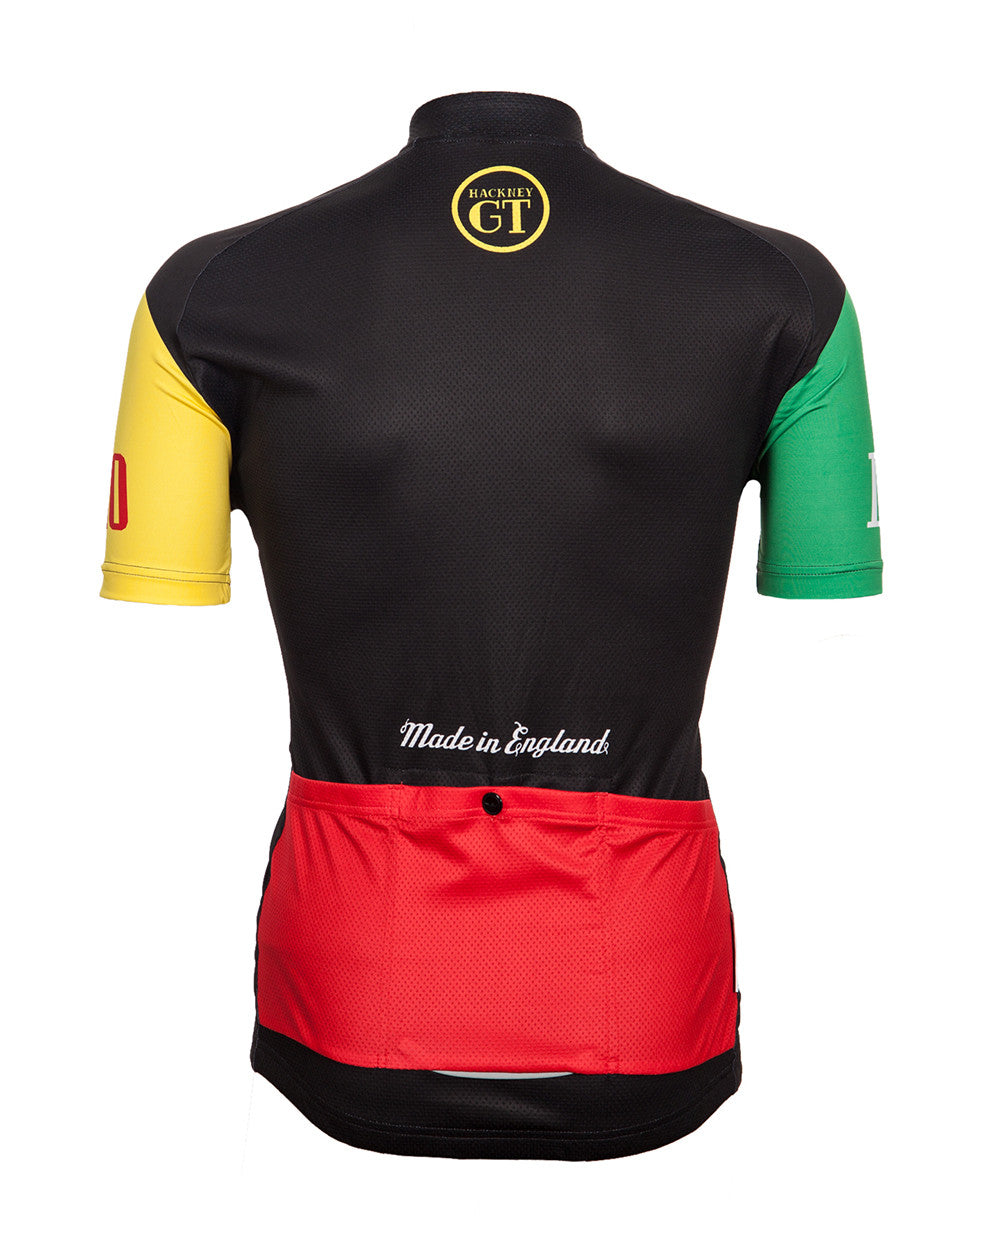 Hackney GT LDN Velo short sleeve jersey